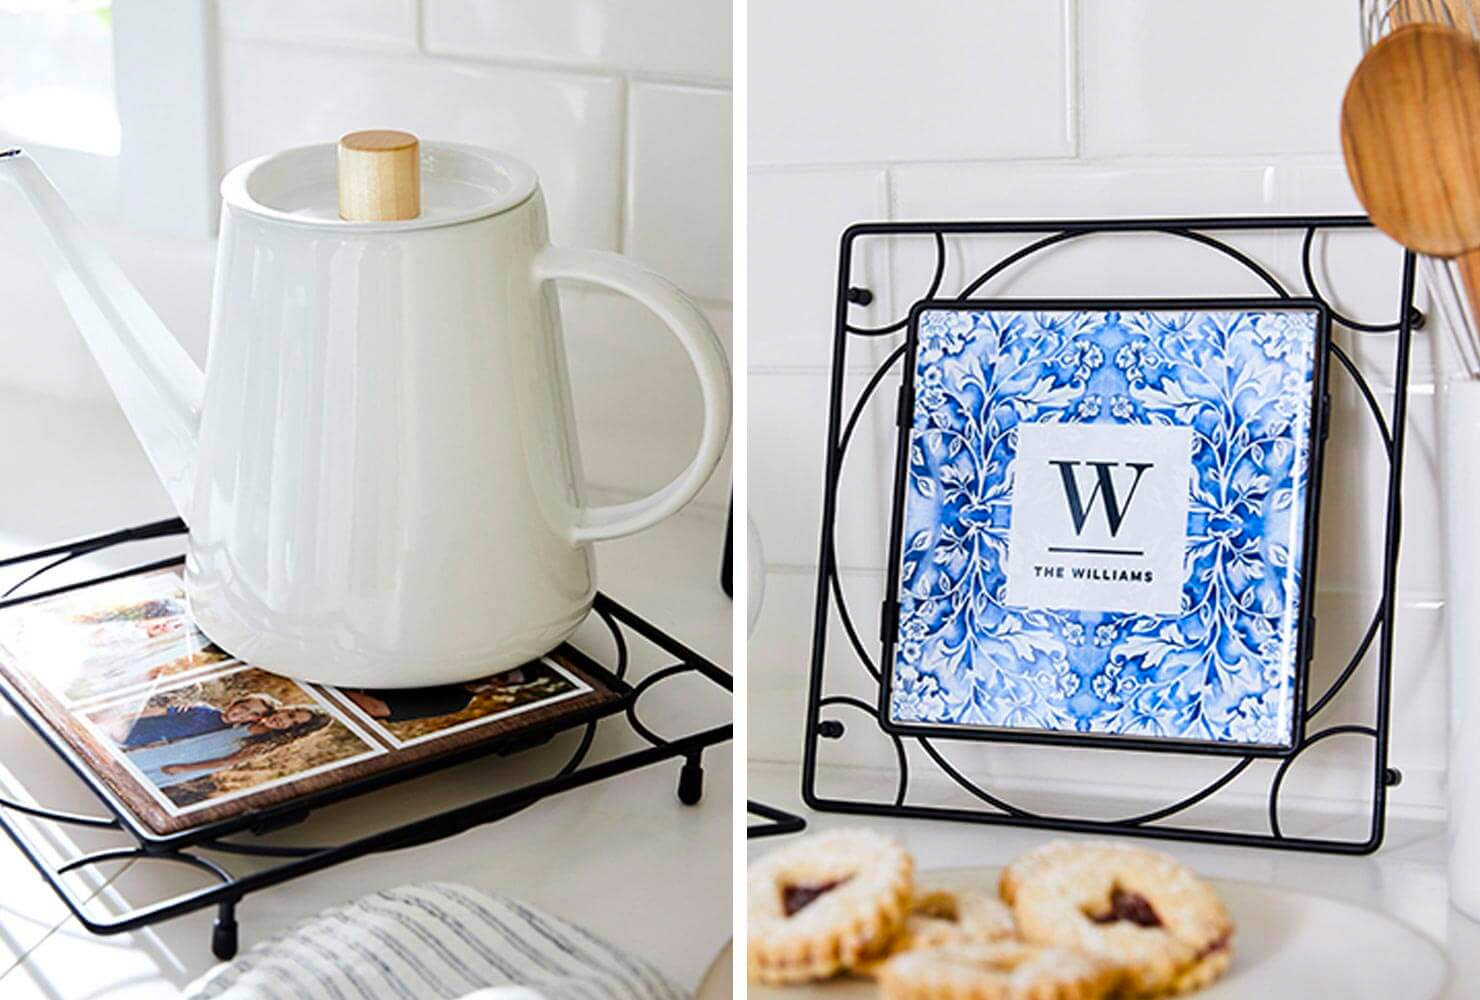 personalized trivet with message profecting the hot kettle and and cookies